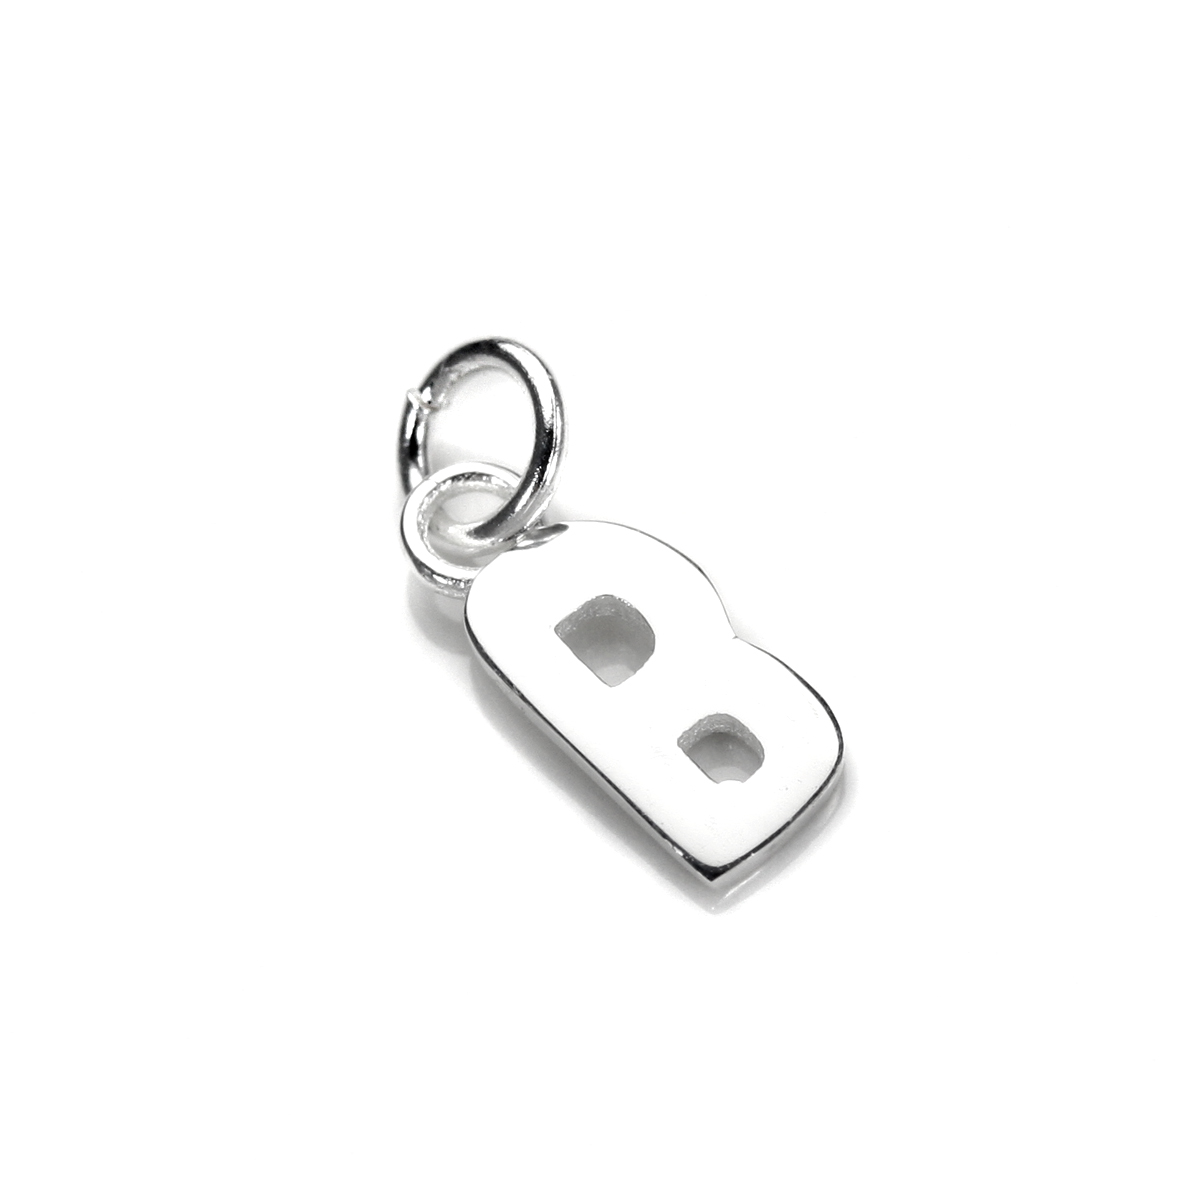 An image of Sterling Silver Letter B Charm